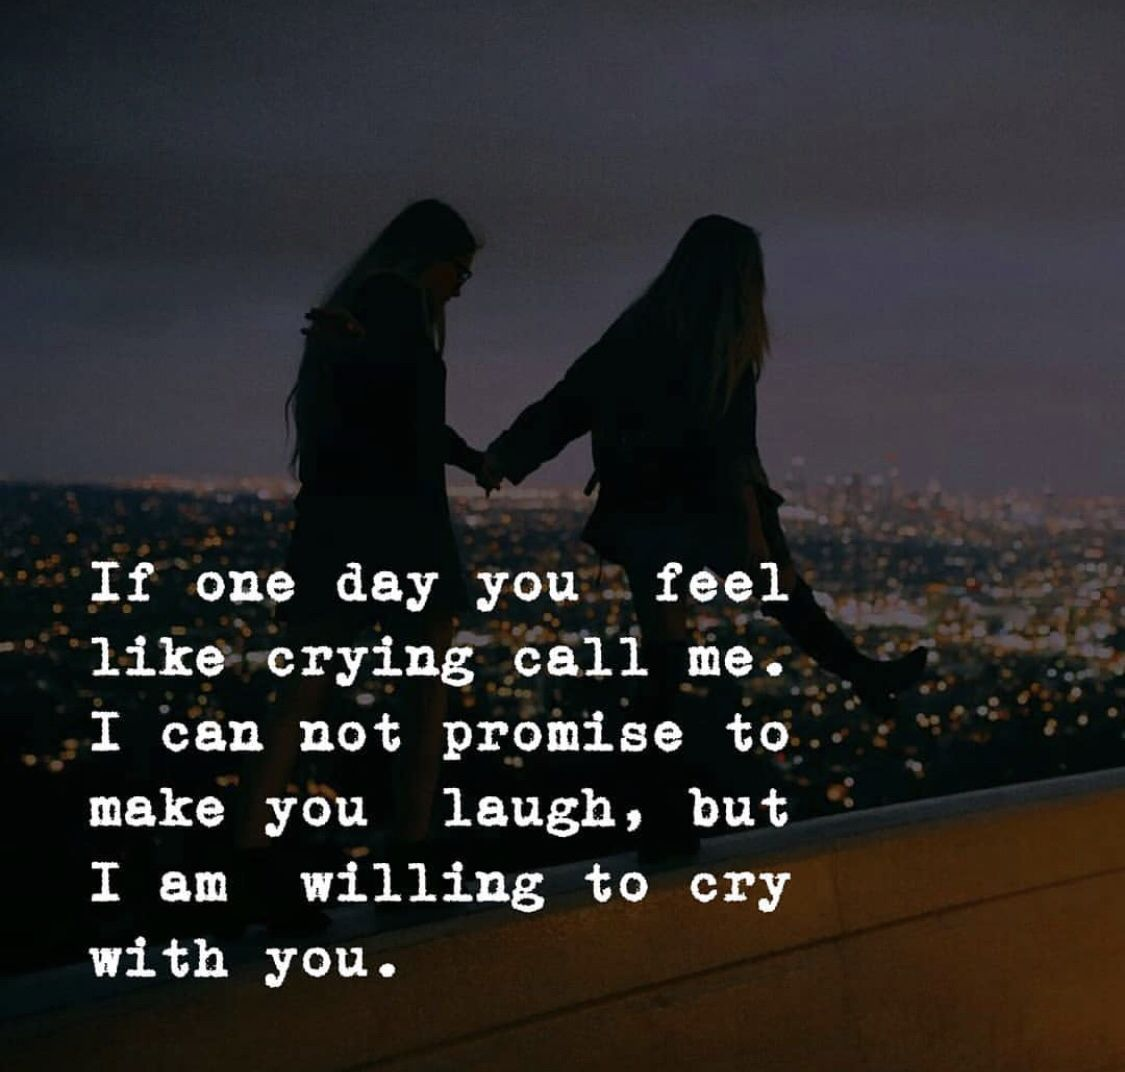 Cute Friendship Quotes to Make You Both Smile